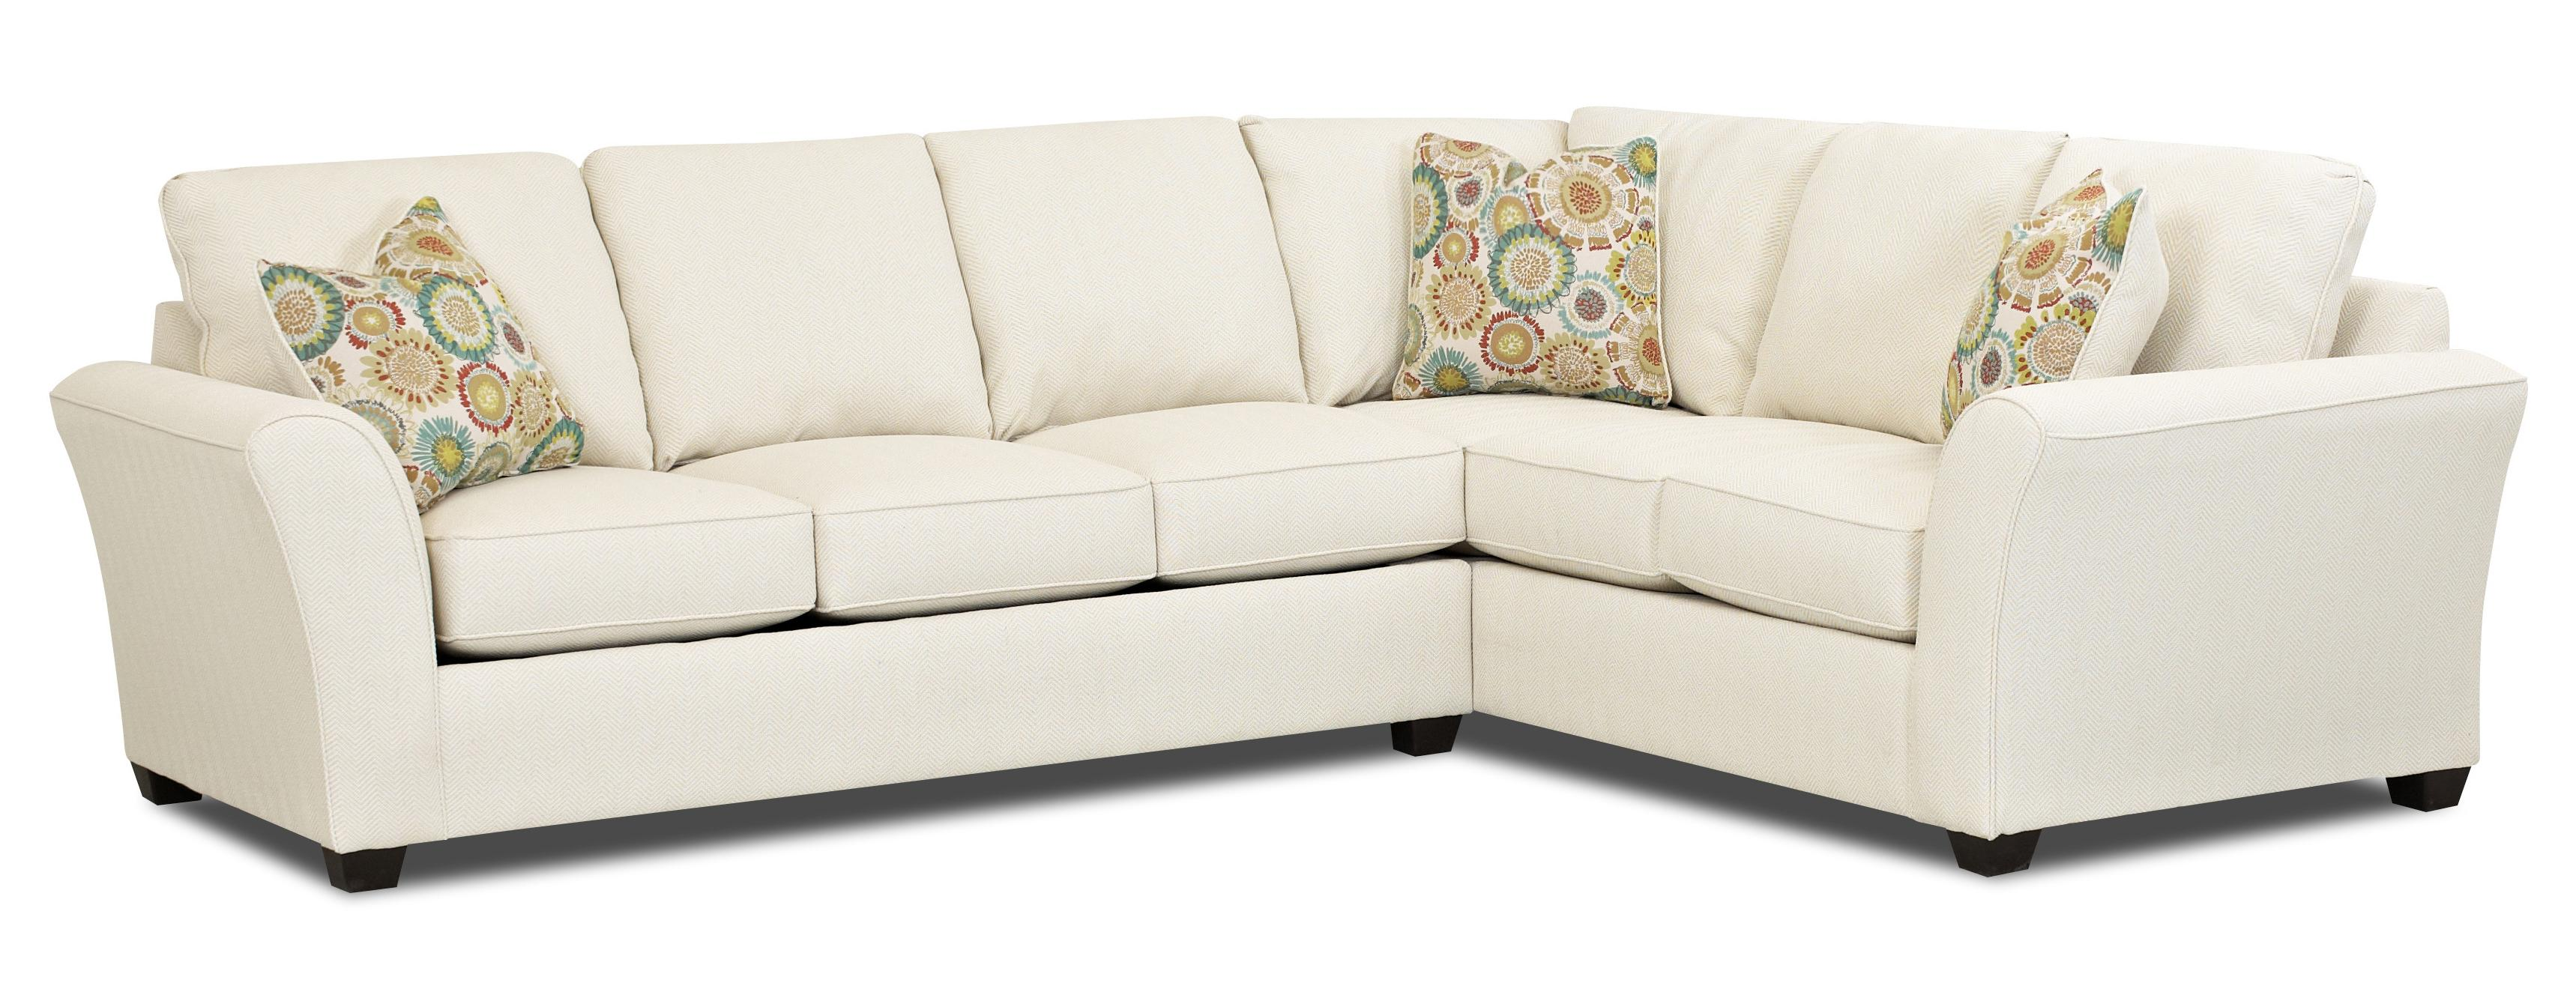 Transitional Sectional Sleeper Sofa With Dreamquest Mattress